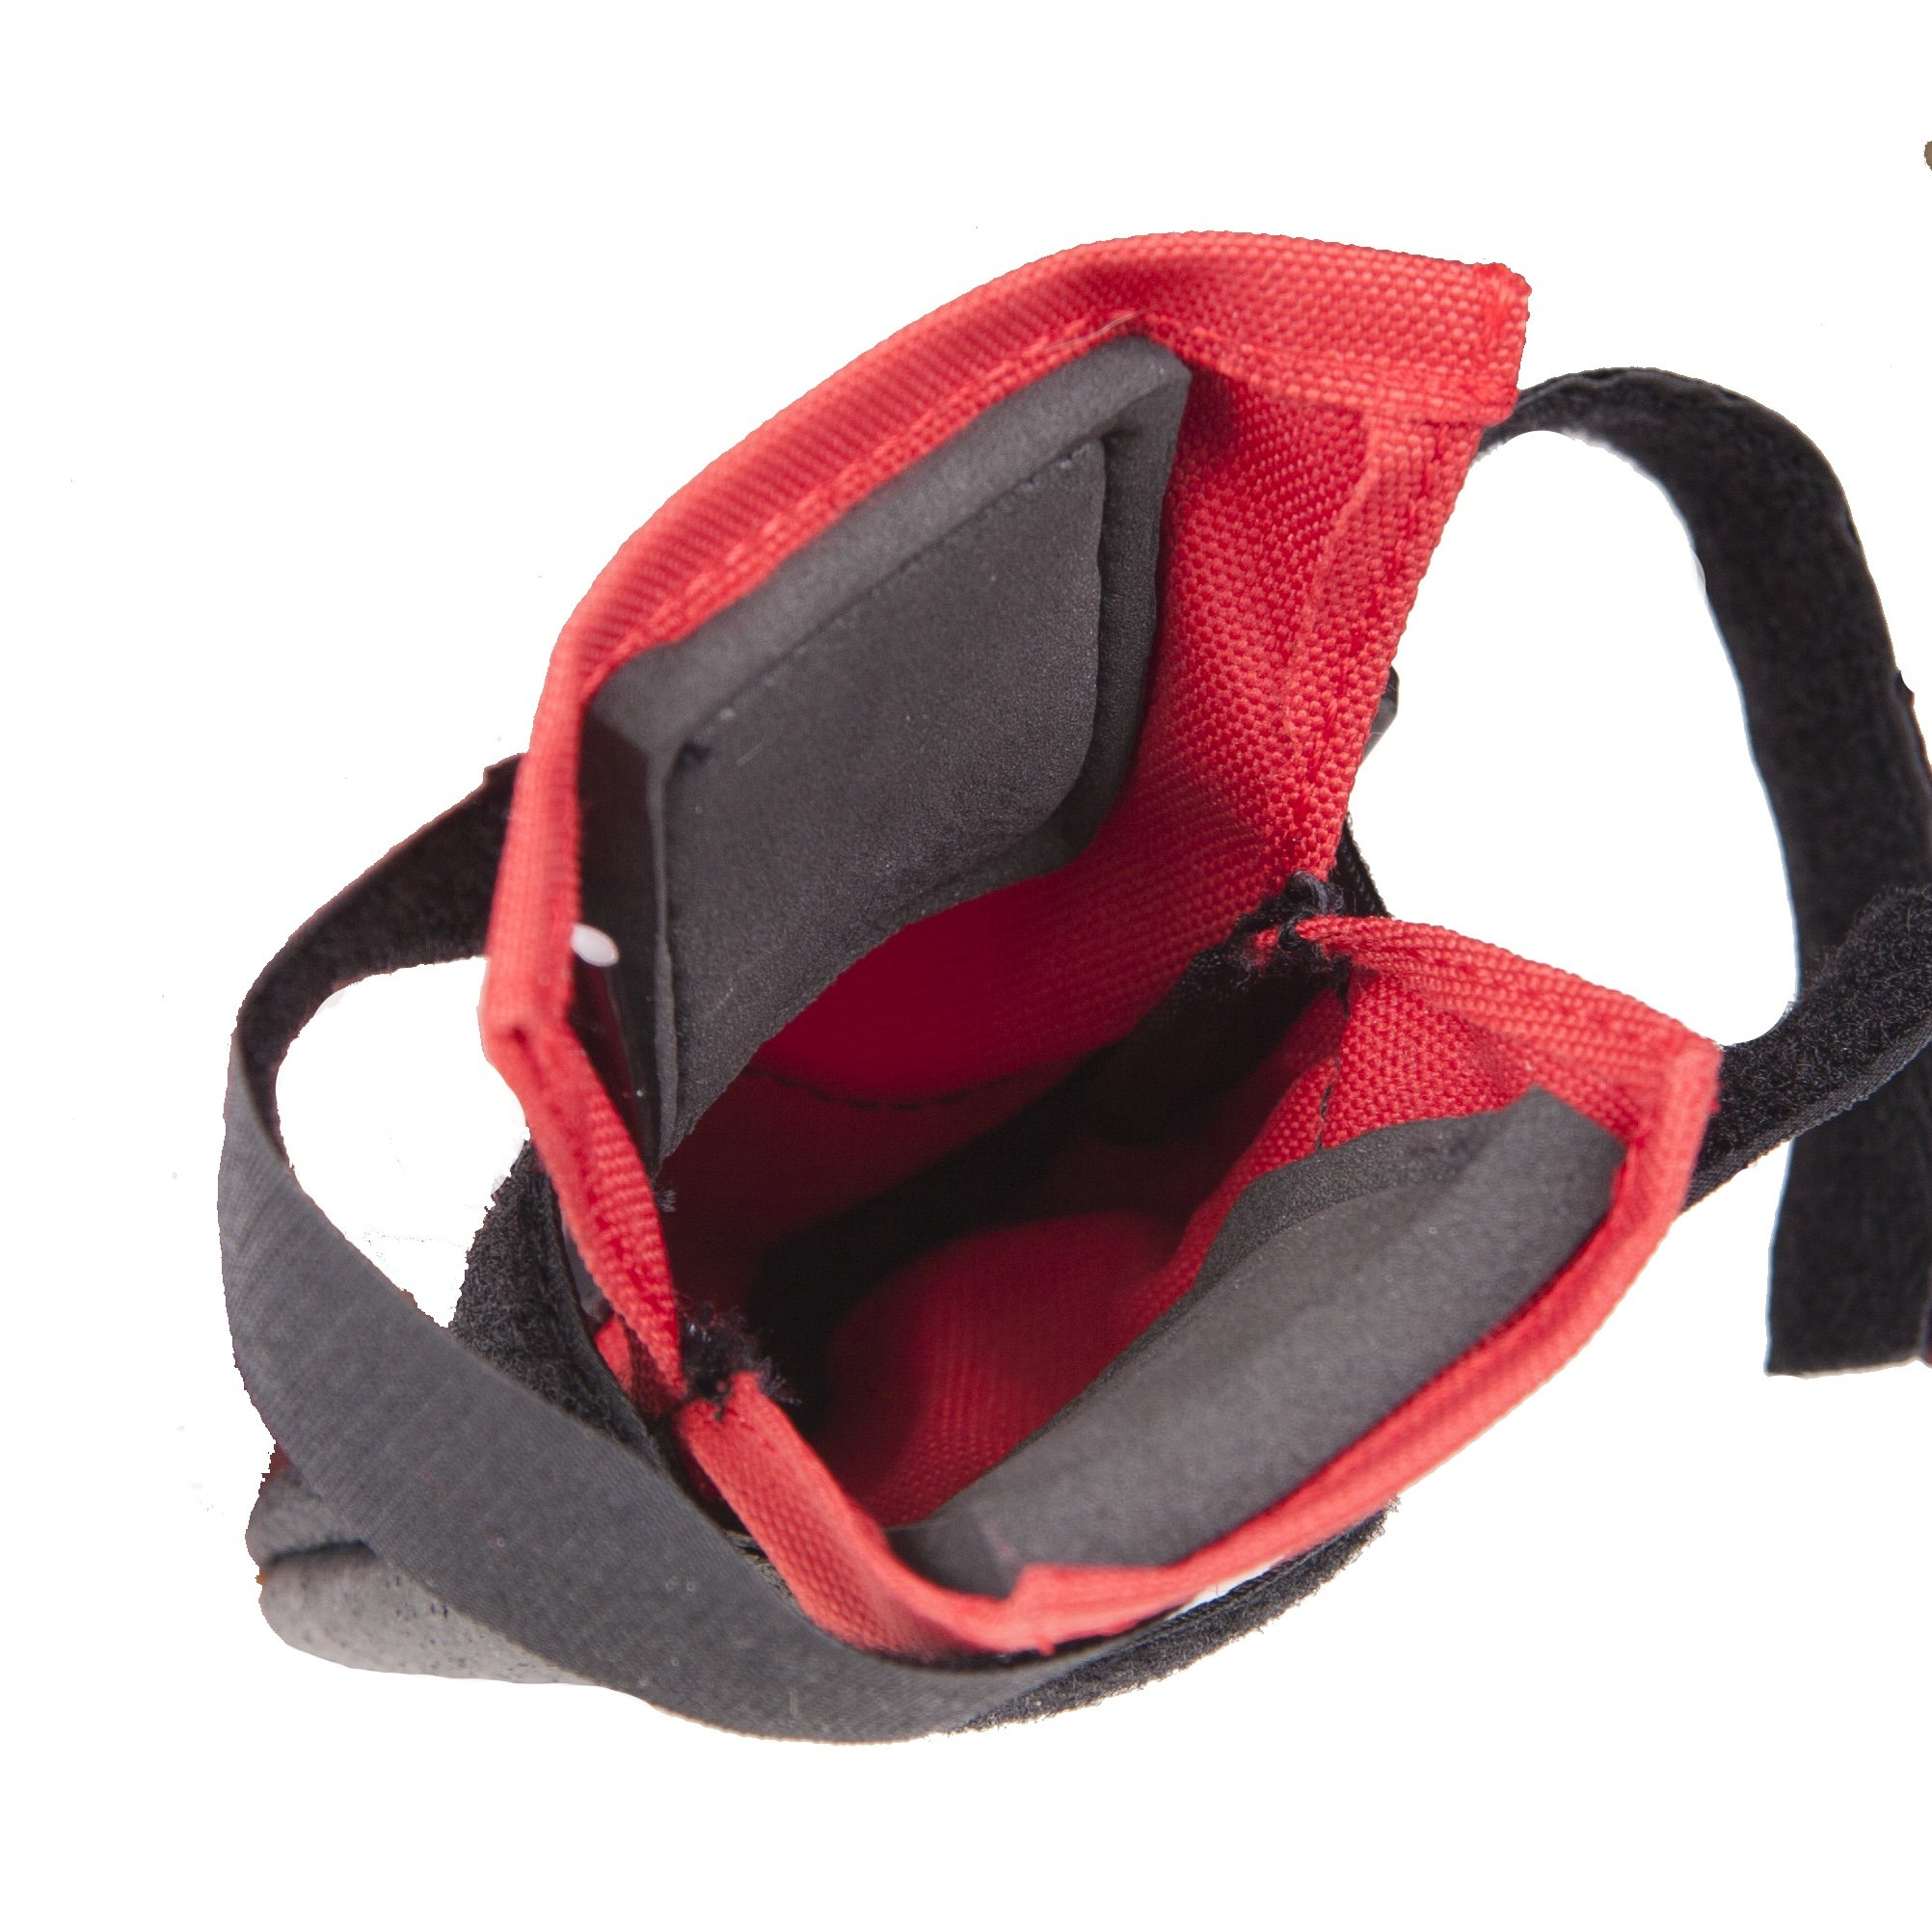 Ultra Paws Durable Dog Boots LARGE Red by Ultra Paws (Image #5)